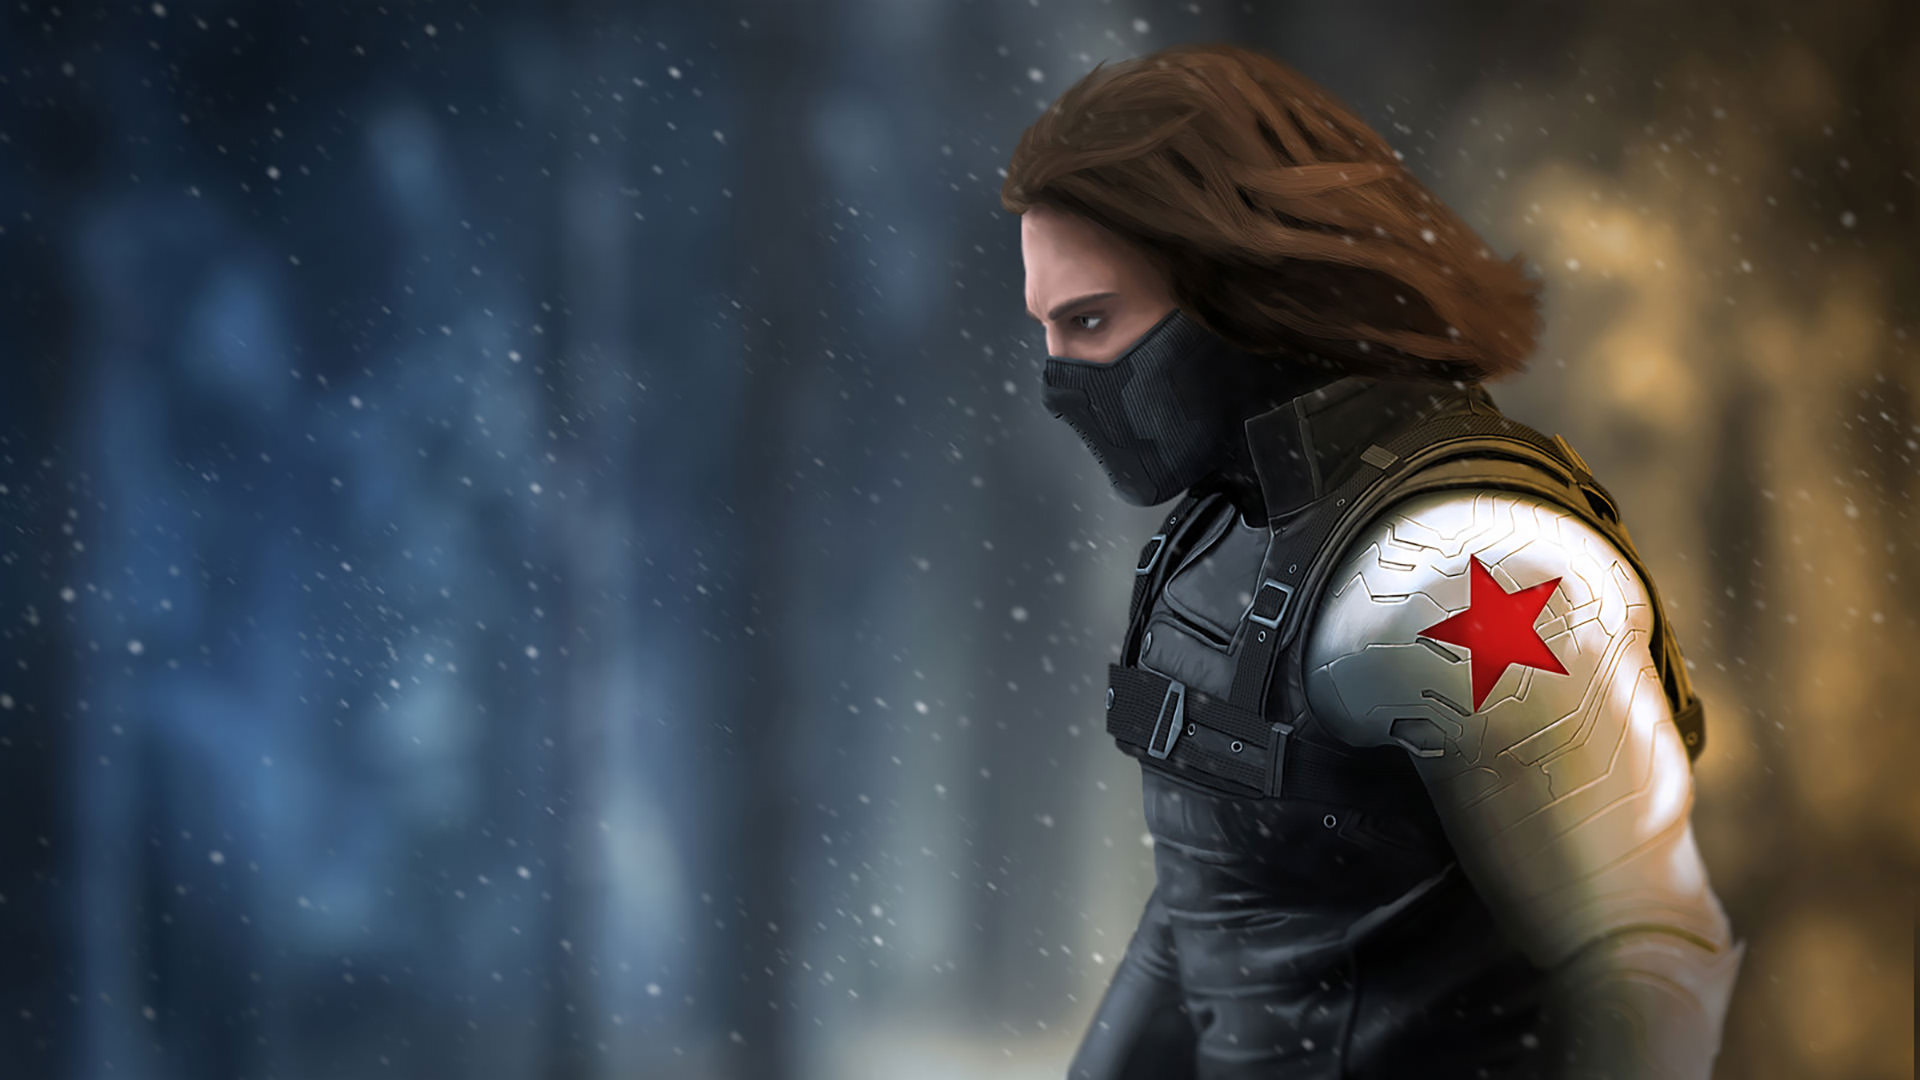 bucky barnes - winter soldier